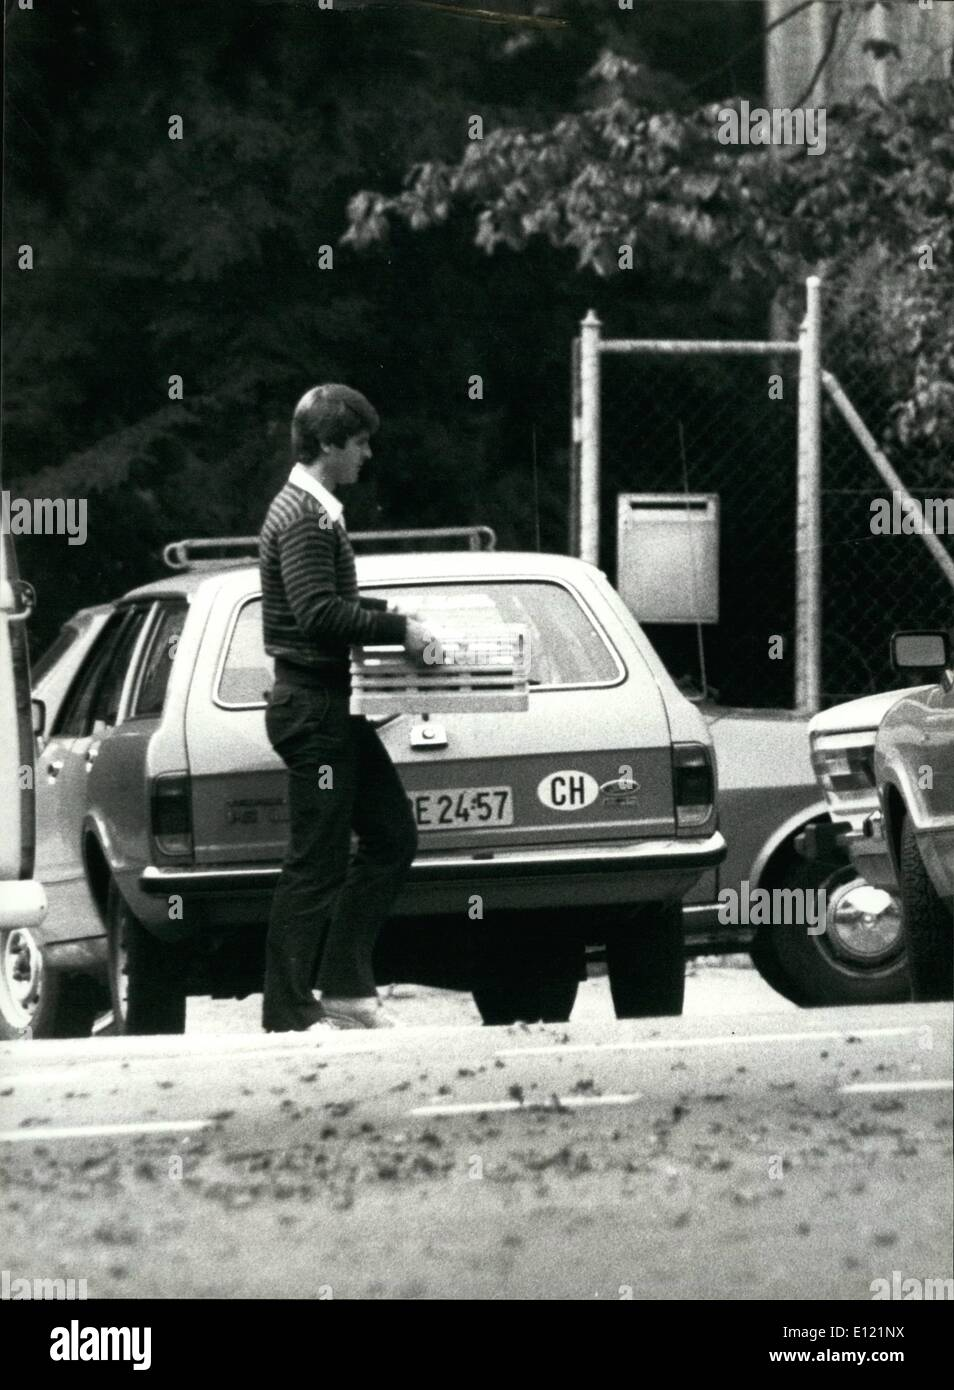 Sep. 09, 1982 - The beginning of the end... The occupation of the Polish Embassy in Berne, Switzerland, was ended Thursday morning, Sep. 9, by Swiss police in a short assault. OPS: Start of the police assault: Unidentified man brings breakfast suitcase requested by the occupiers, to the outdoor of the occupied building. Hidden in the suitcase is a bomb with special gas, sound and light effects. The door was blown up shortly after and the four occupiers arrested unhurt, as well as the five remaining hostages were freed unhurt. - Stock Image